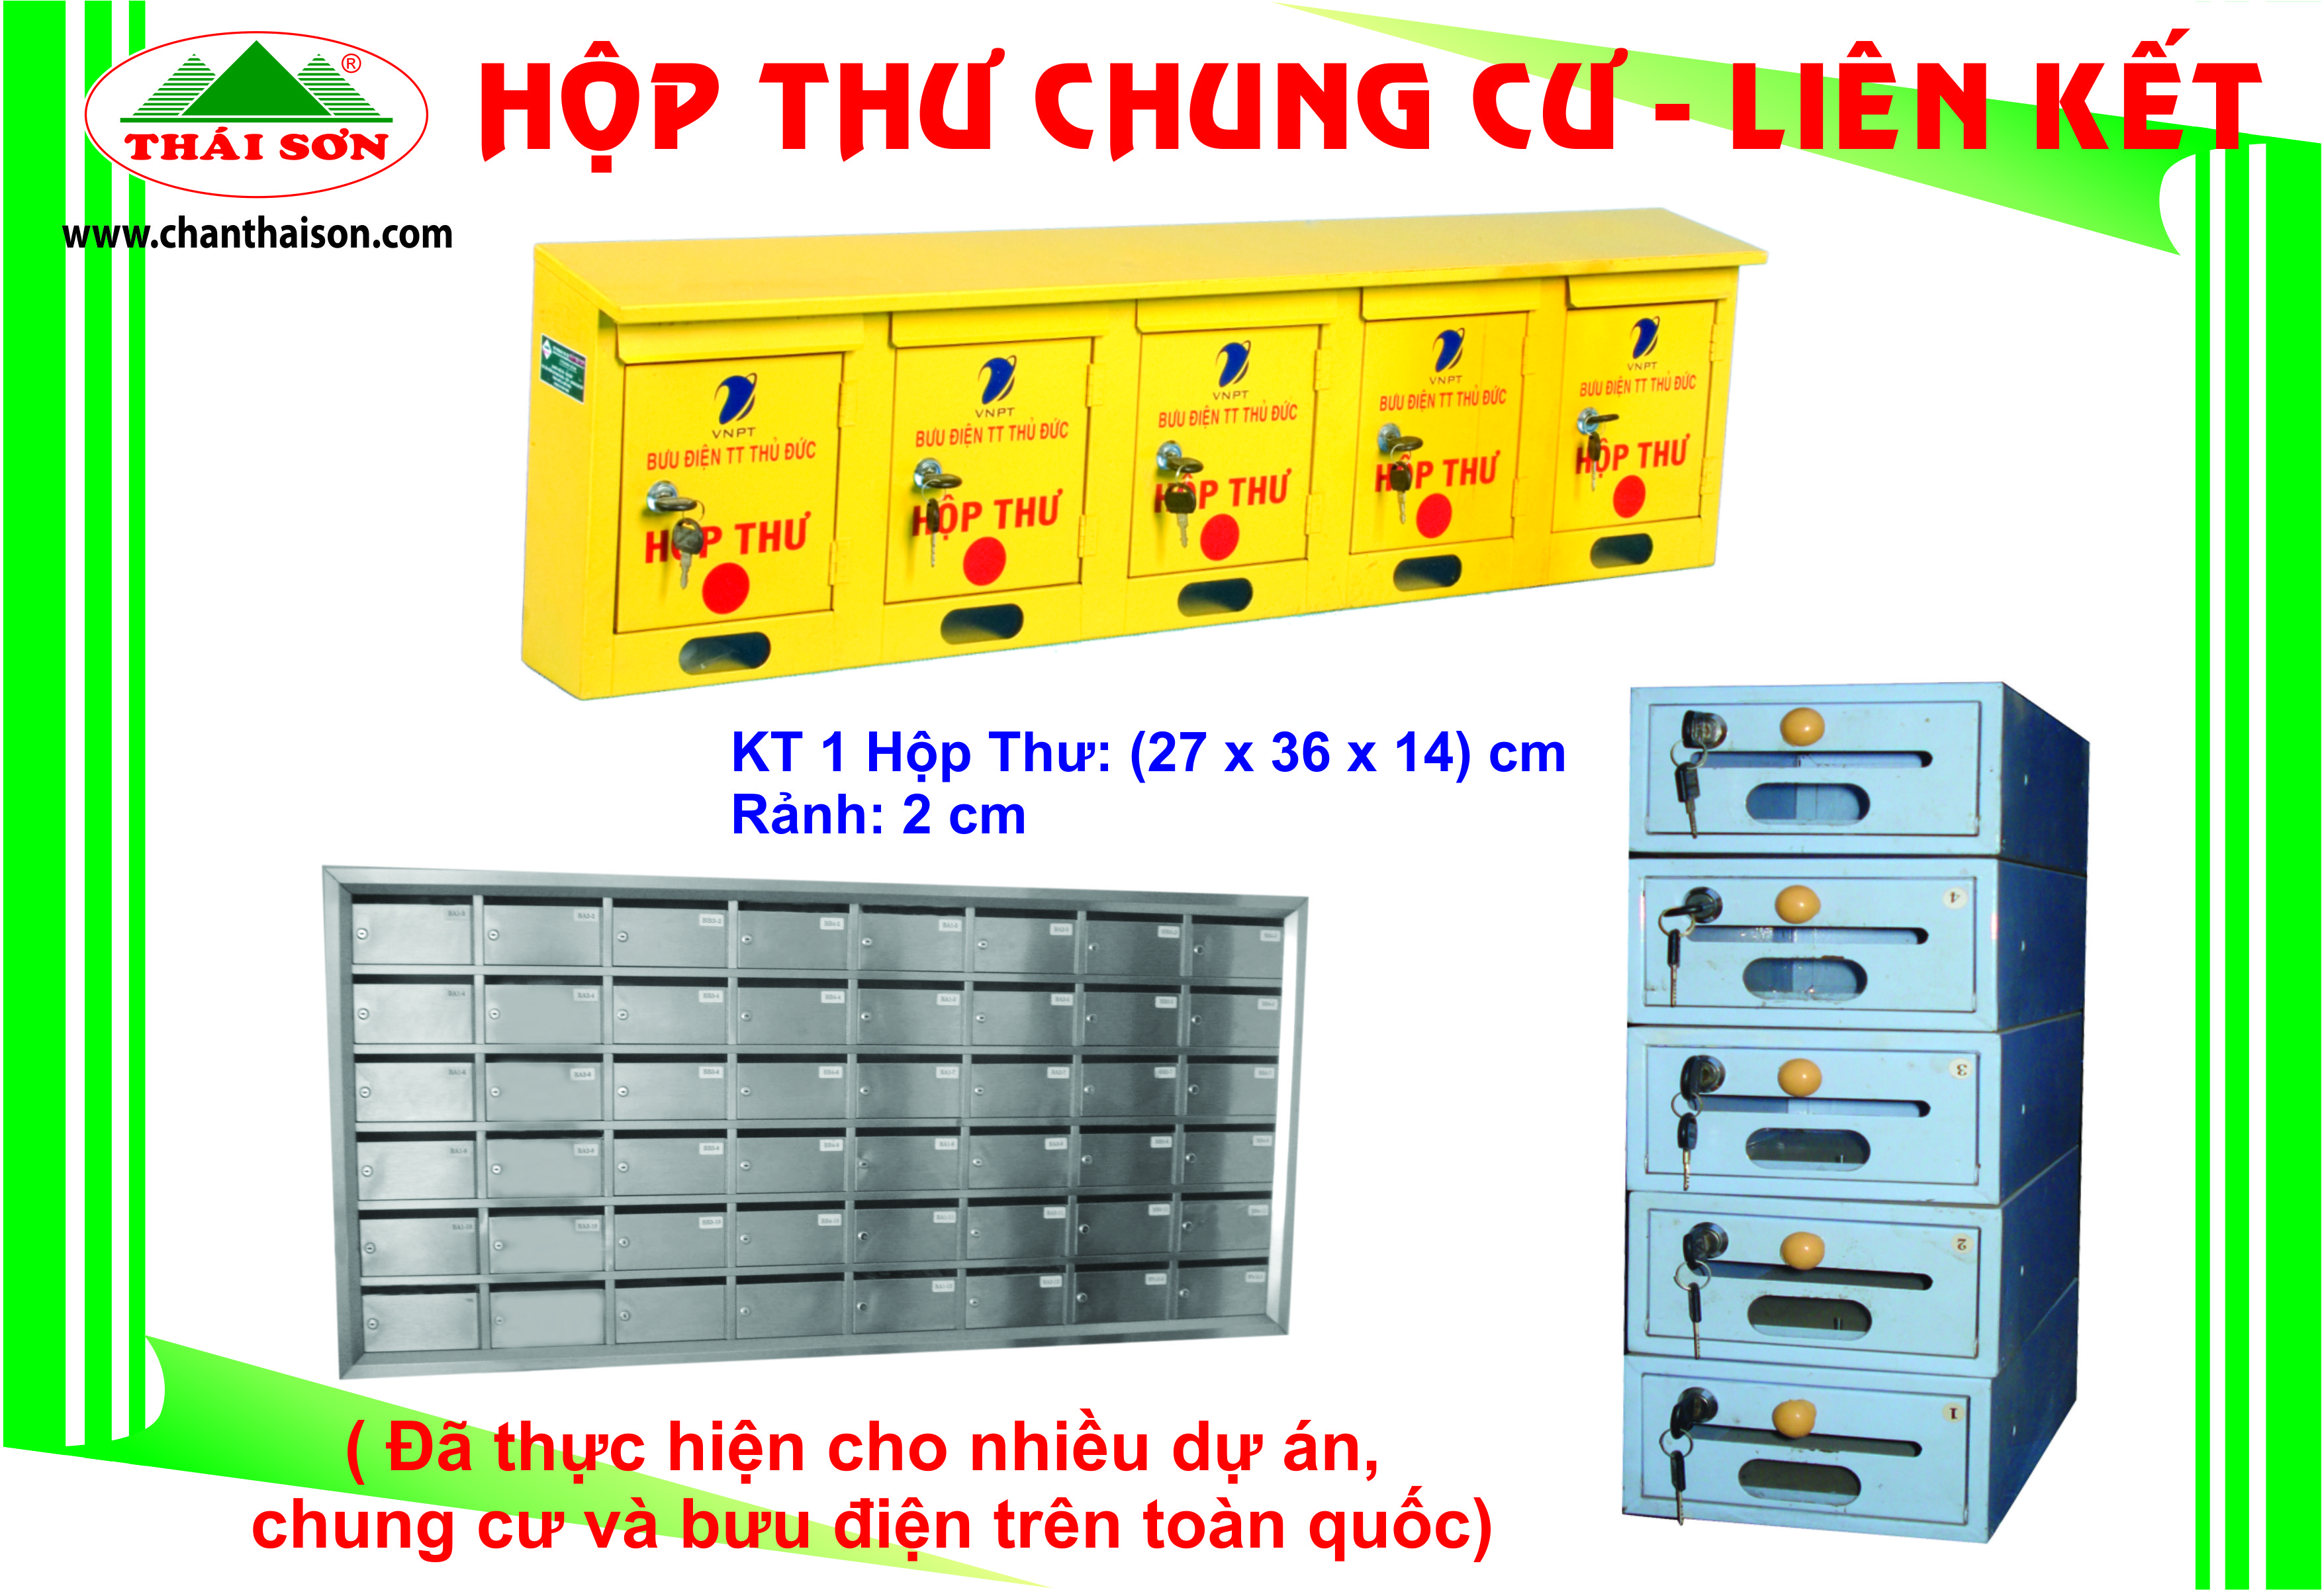 Hp Th Lin Kt - Chung C